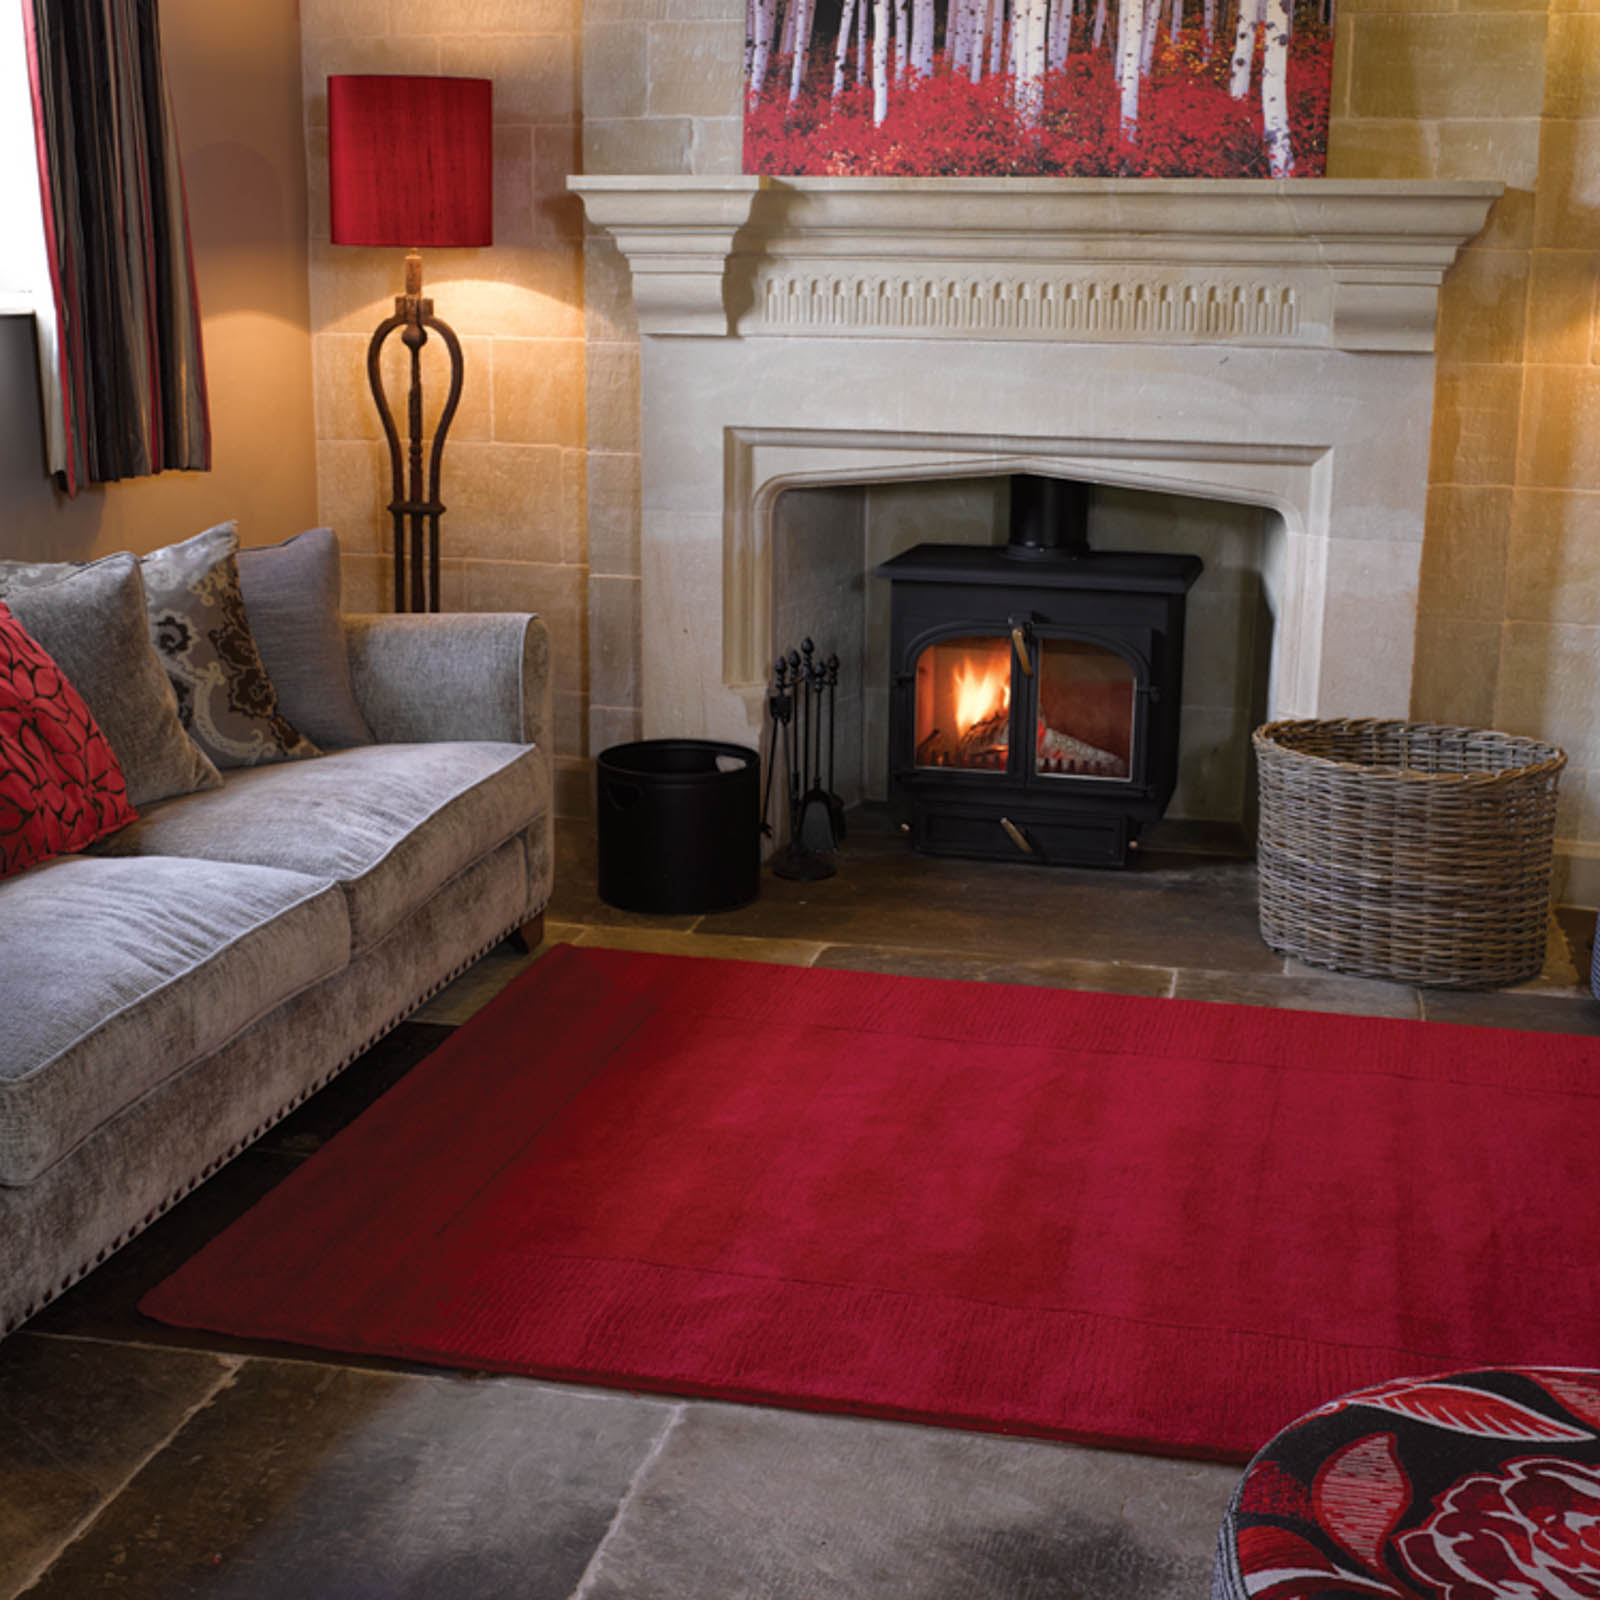 Tuscany Siena Rugs in Red